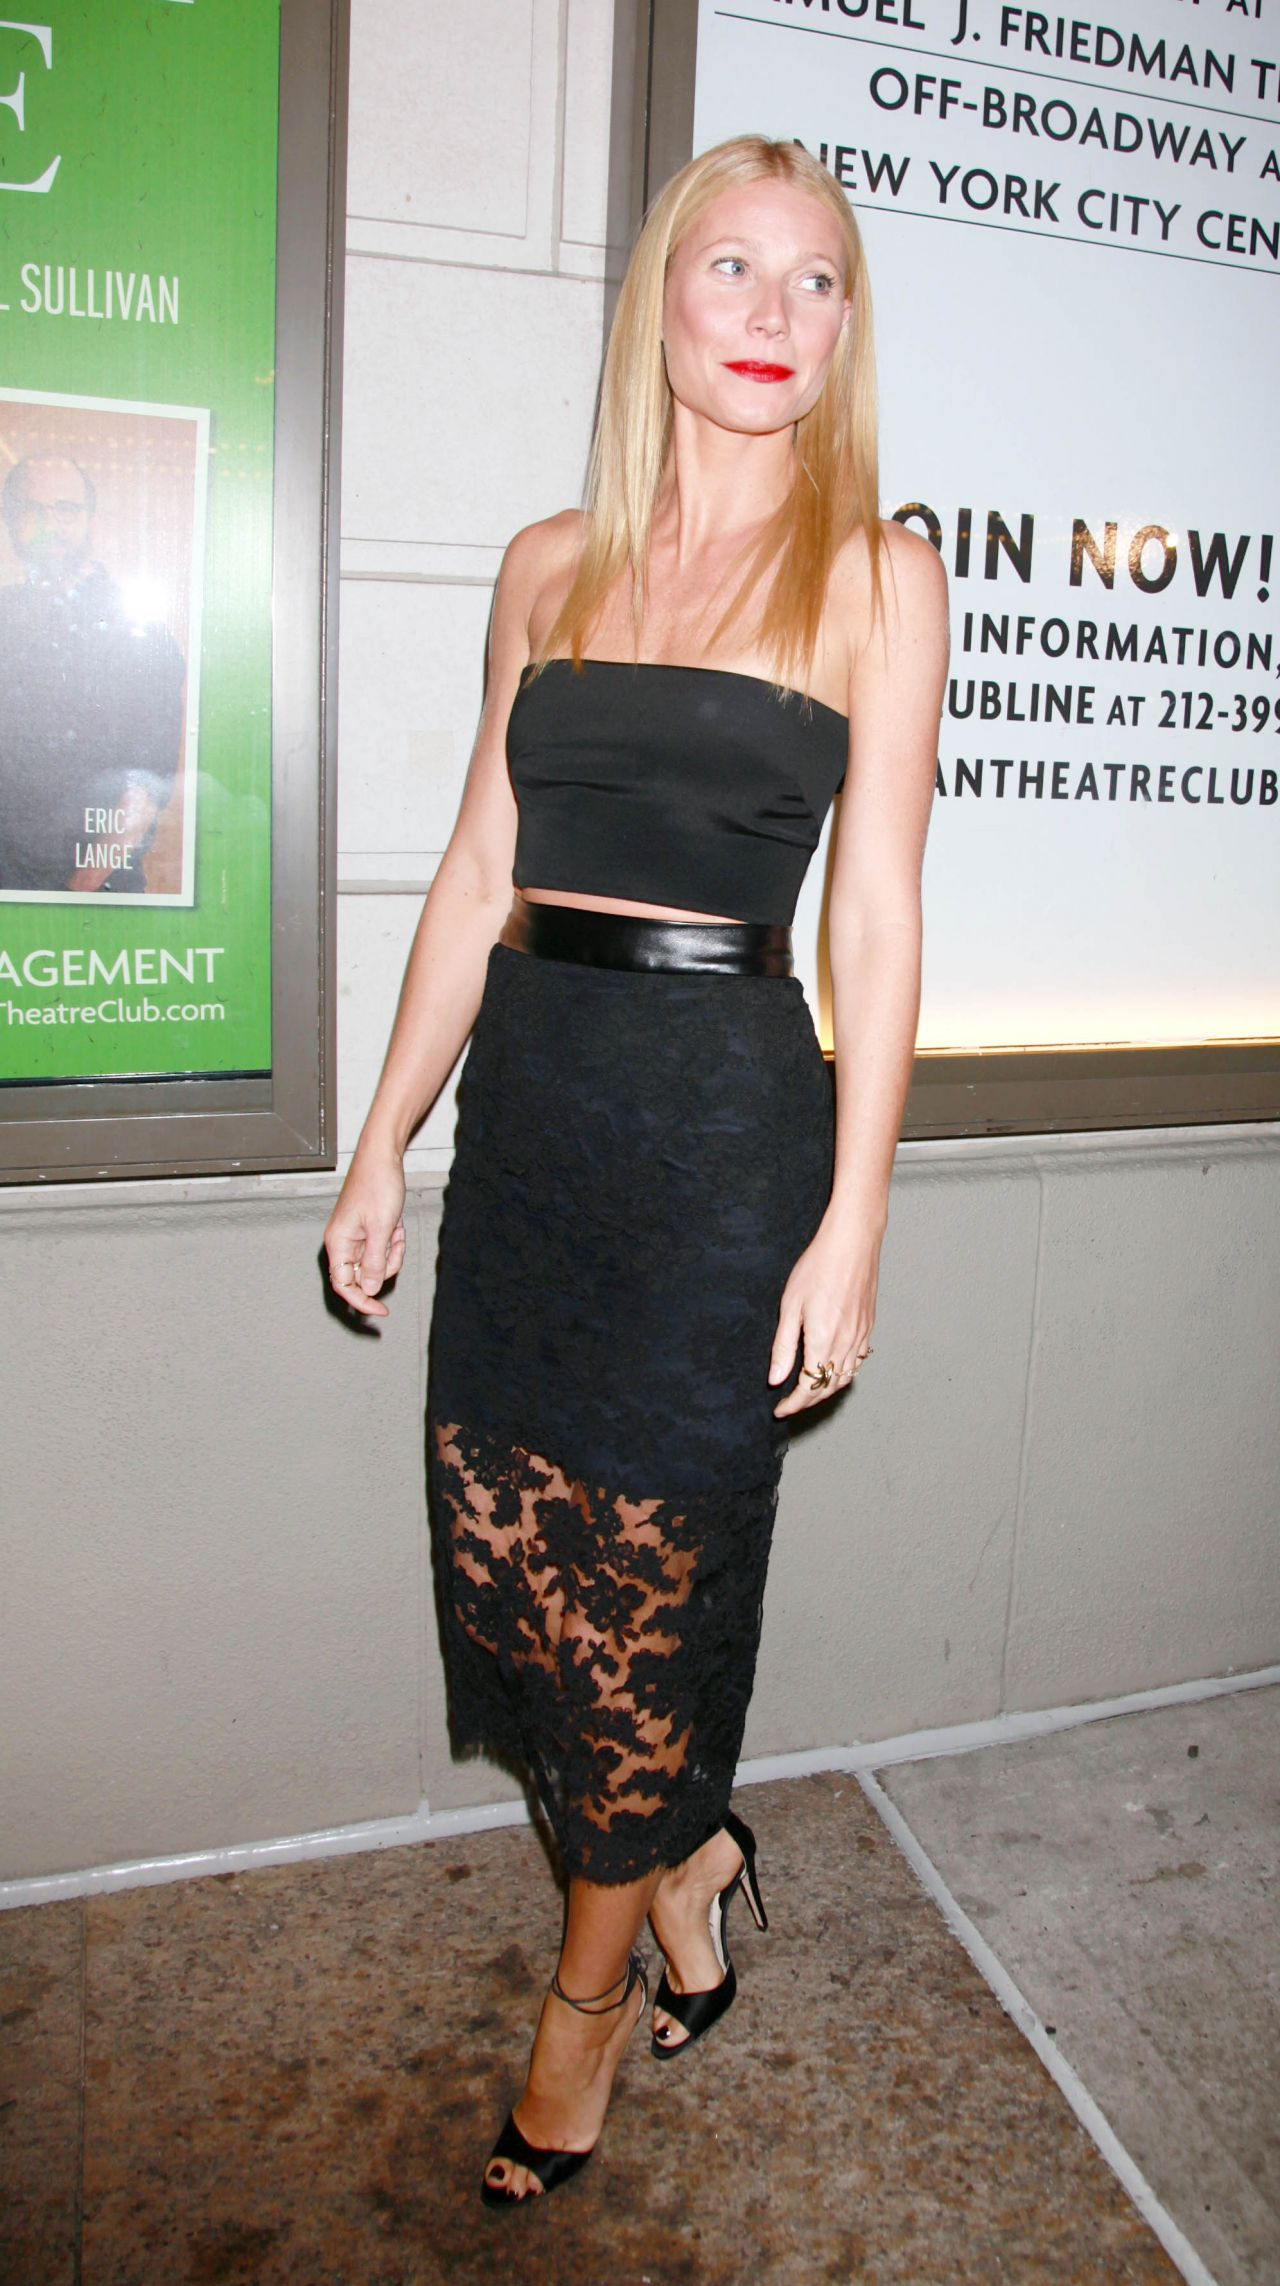 gwyneth-paltrow-the-country-house-opening-night-in-new-york-city_3